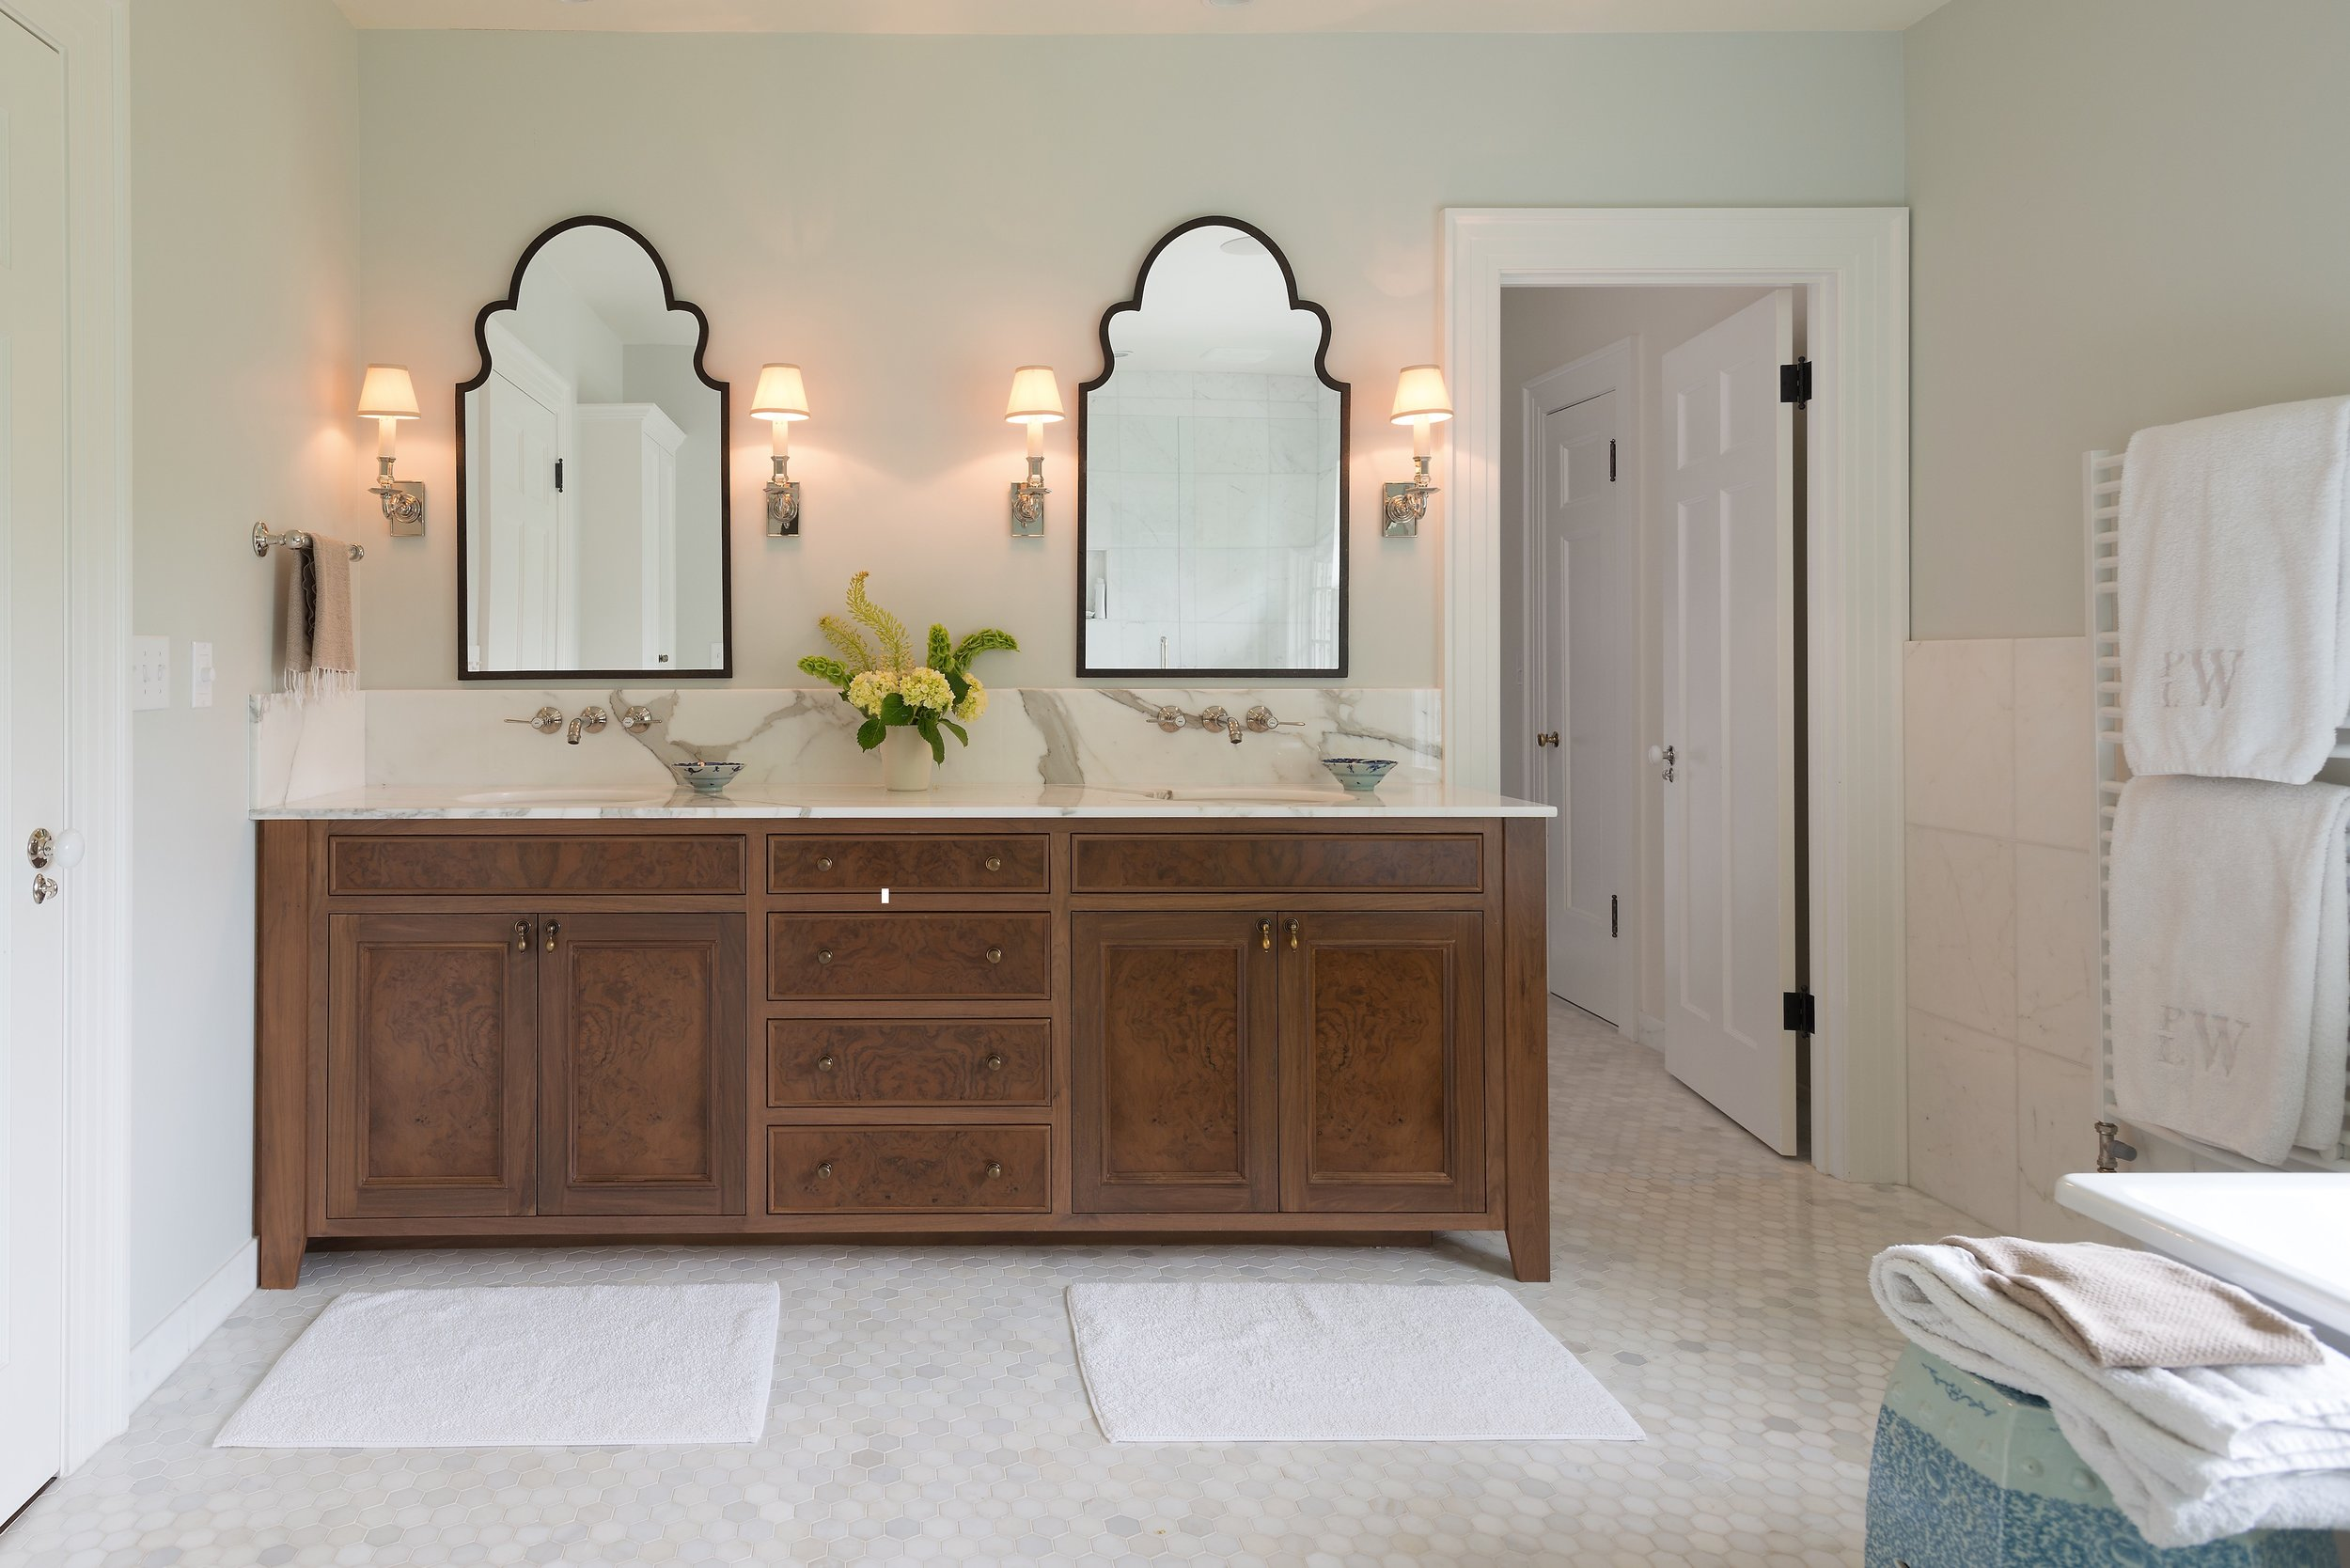 Bathroom vanity interior design by Jenni Leasia Interior Design in Portland Oregon